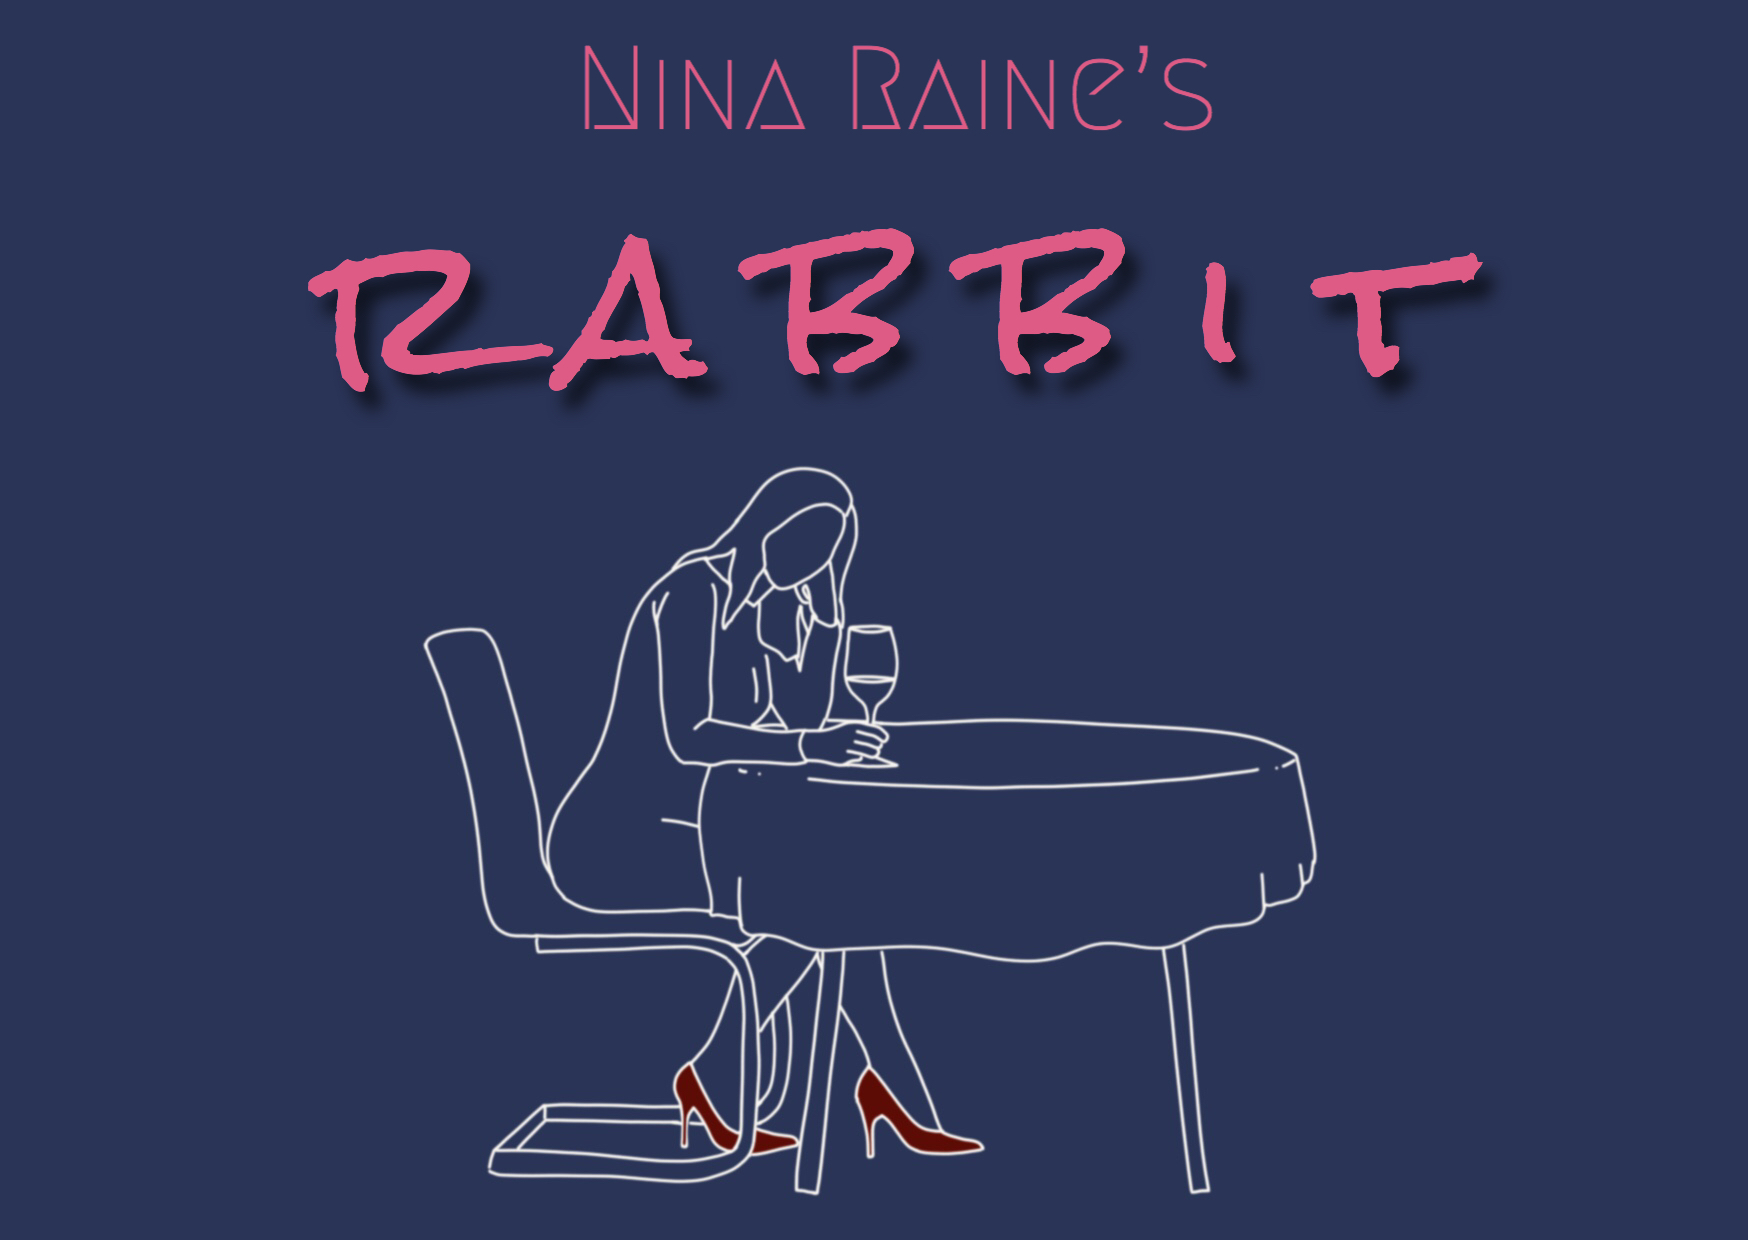 Rabbit by Nina Raine at Cúirt International Festival of Literature